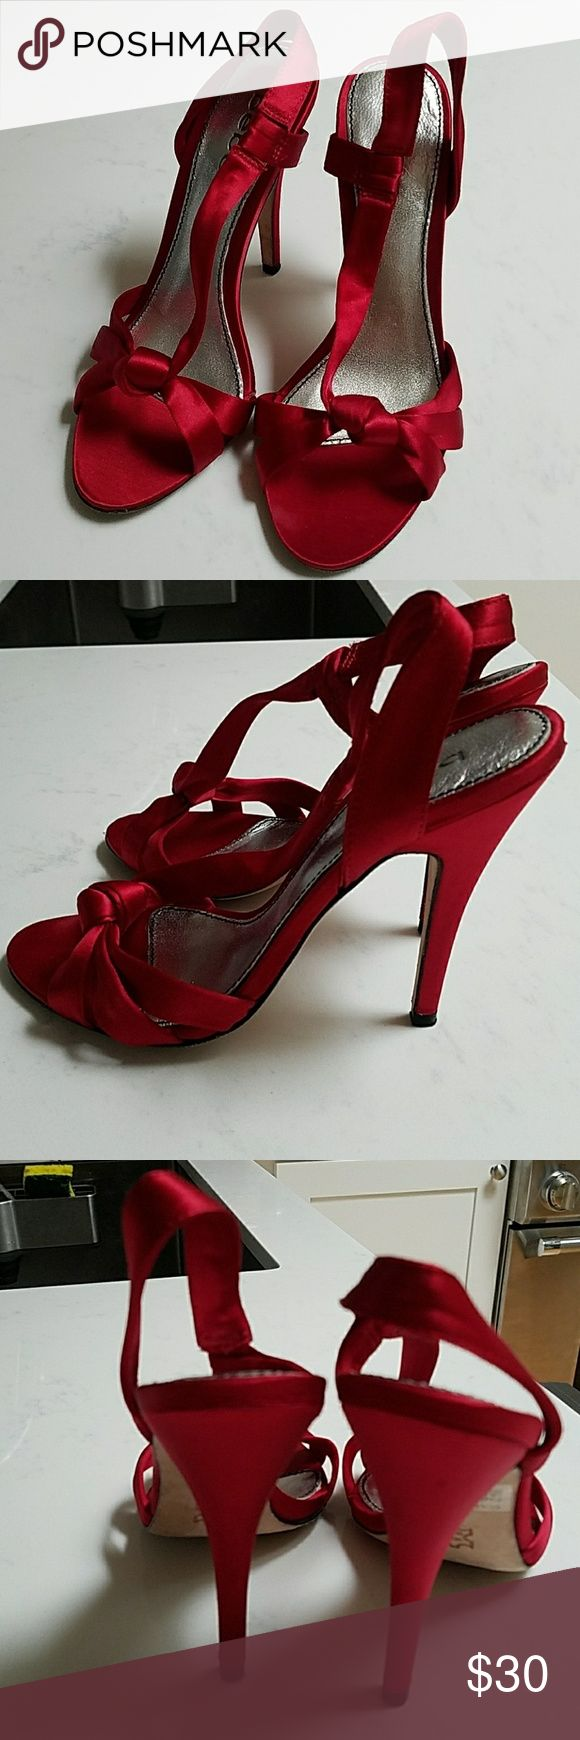 Bebe satin red slingback sandals sz 7 Beautiful, barely worn, satin red slingback sandals from Bebe. Knot detailing on the front. Bottom im very good condition. 4 inch heel. Box included. bebe Shoes Sandals